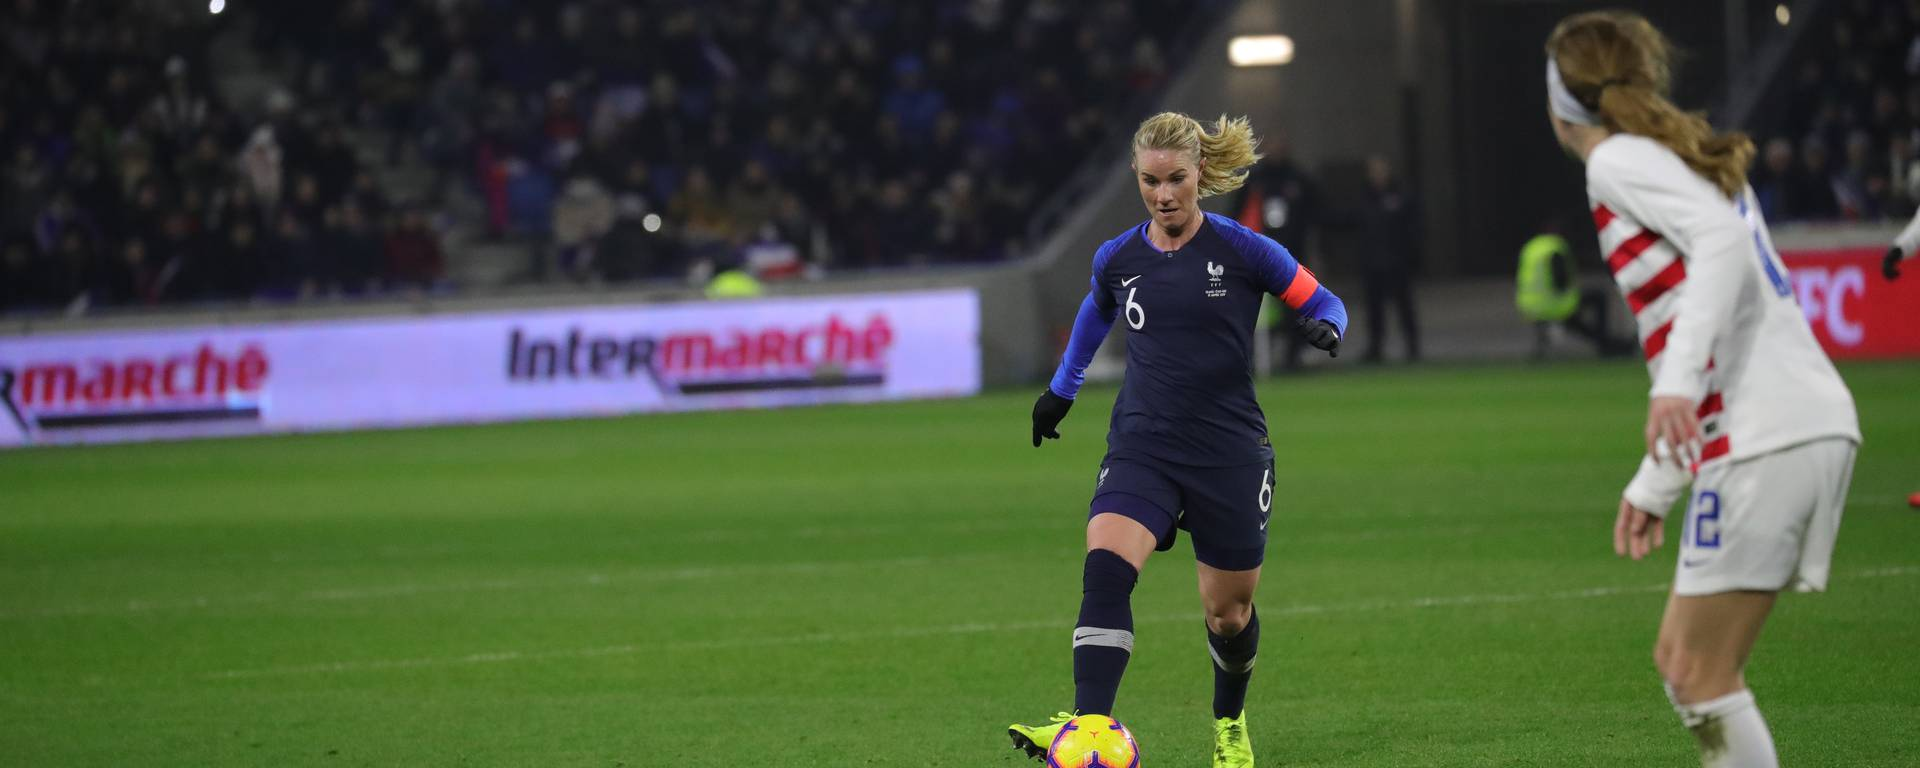 Amandine Henry match amical France Etats Unis Janvier 2019 Crédit photo archives FFF